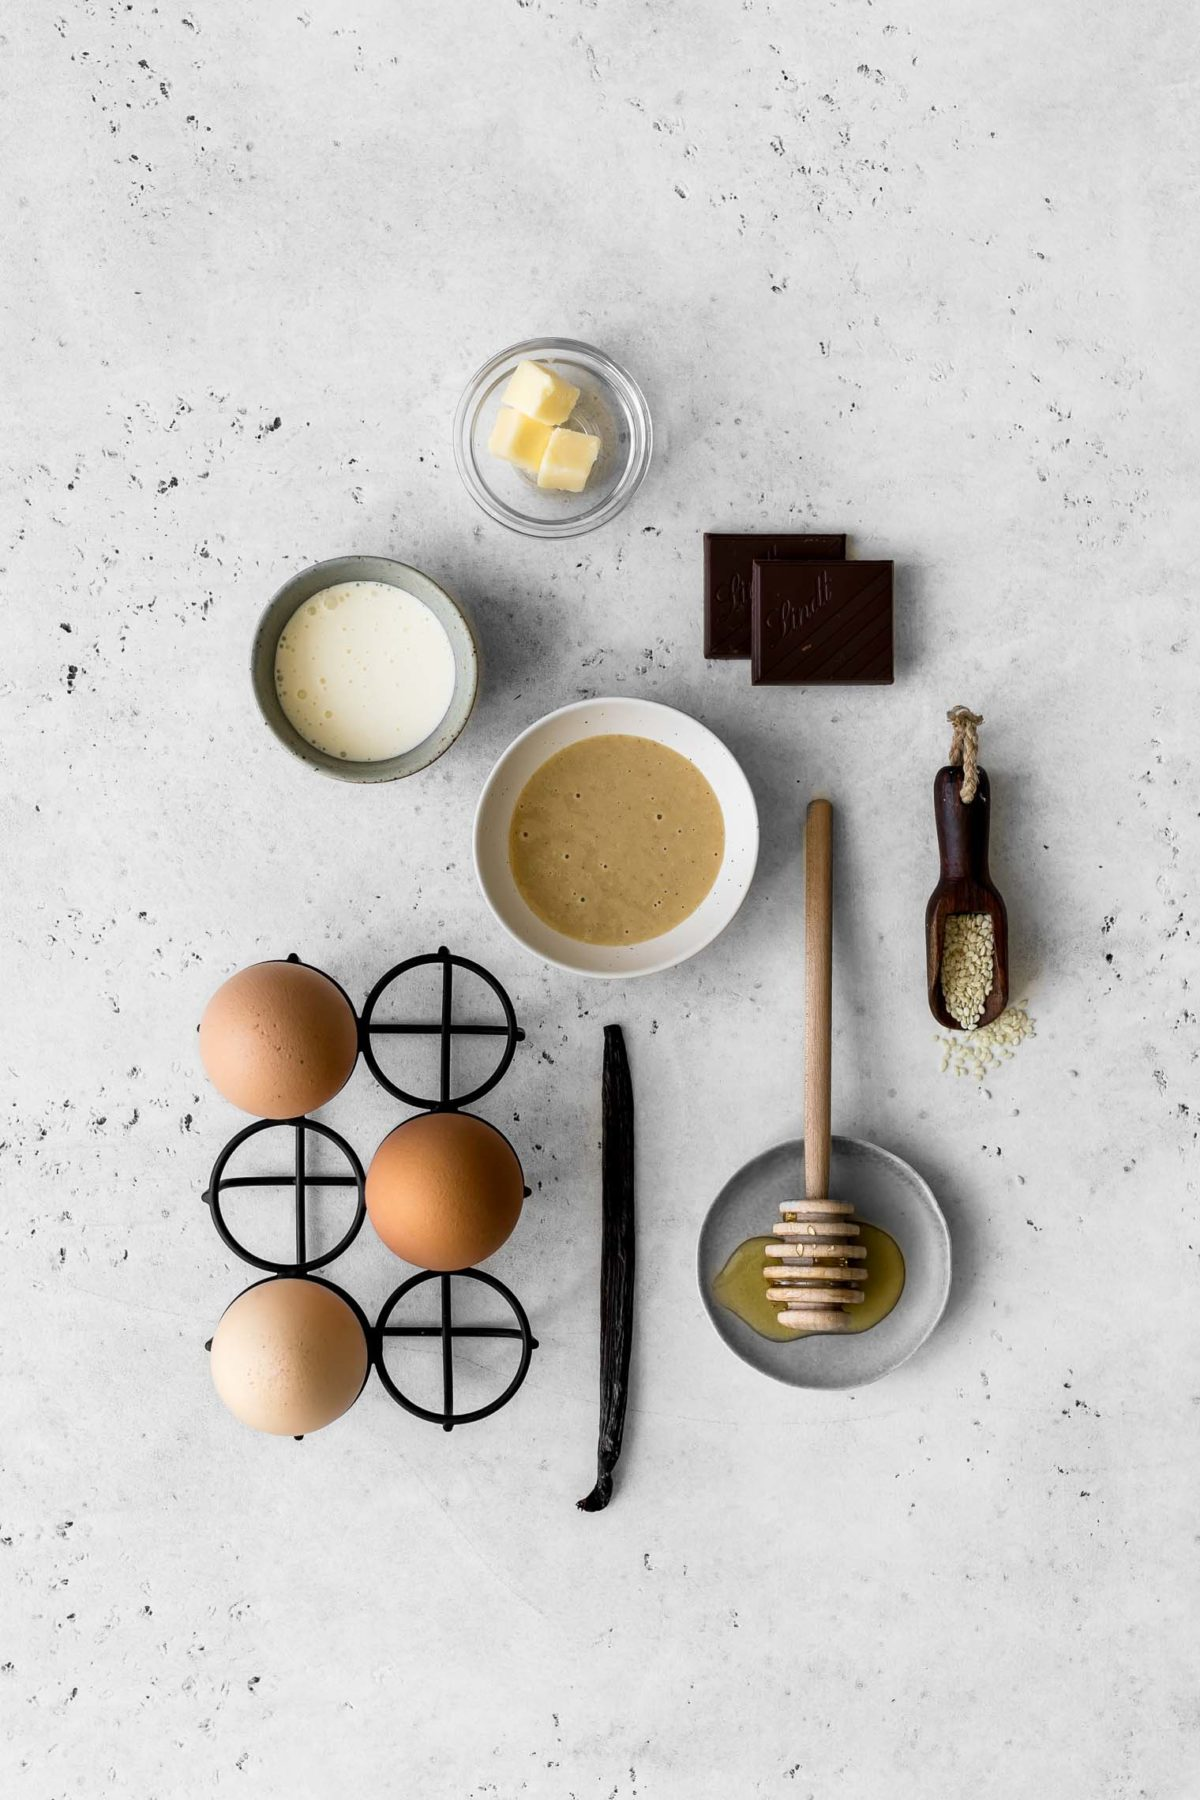 Ingredients to make tahini and chocolate flourless cake